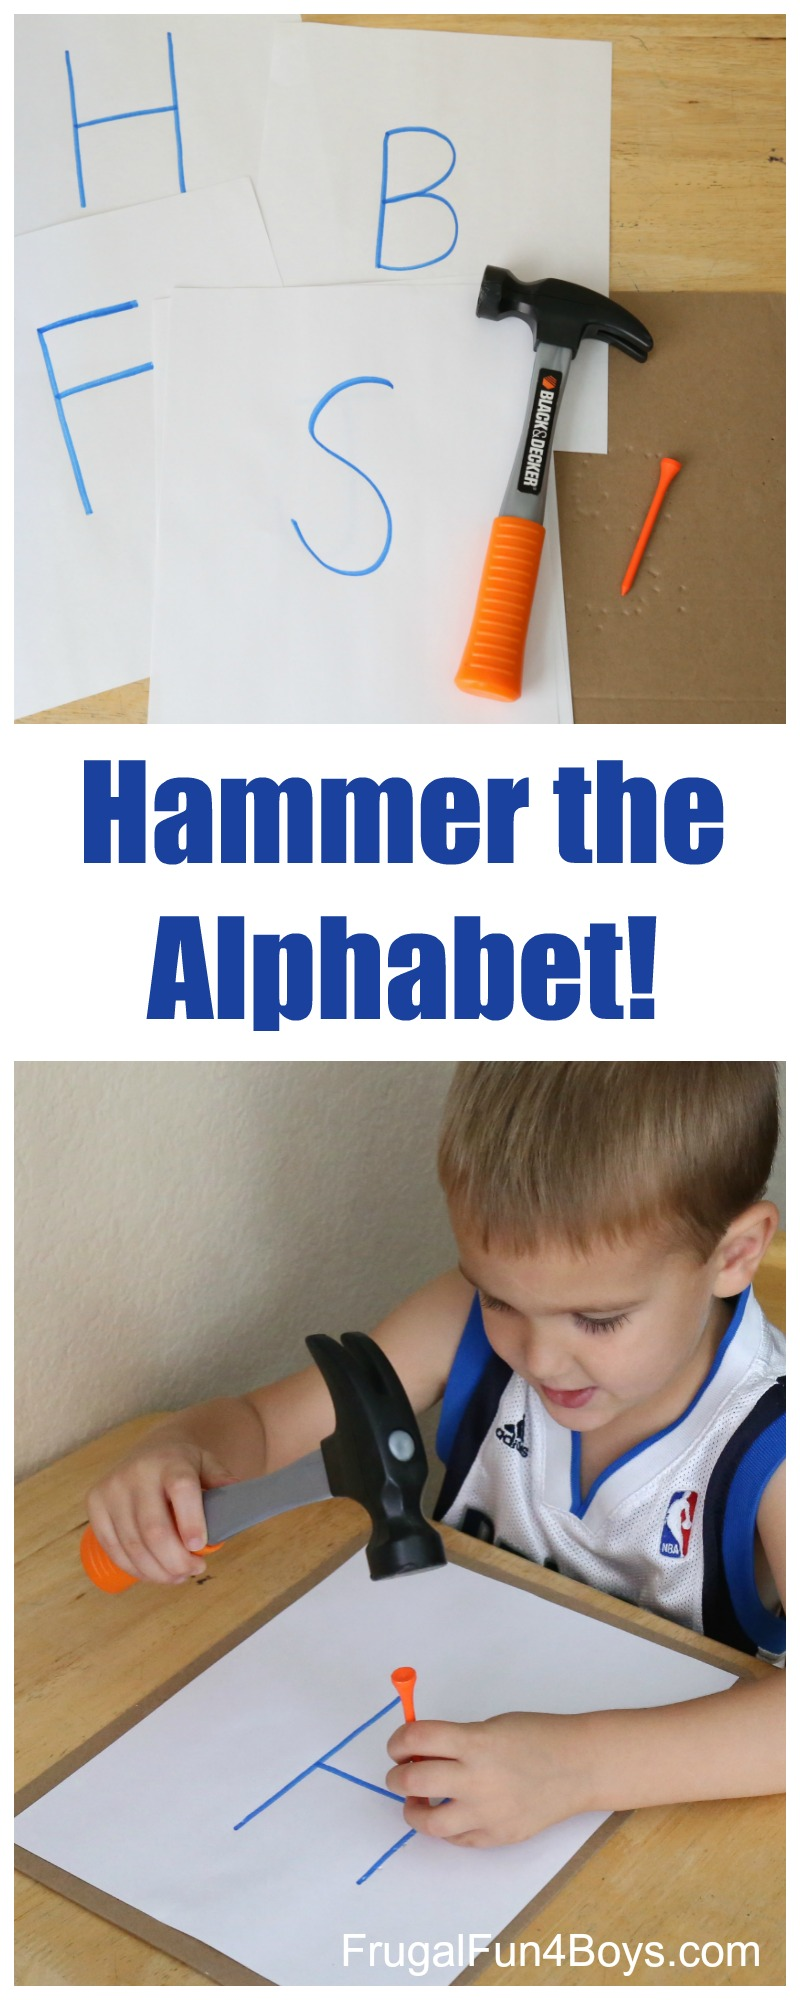 Hammer the Alphabet!  Preschool Letter Learning Activity